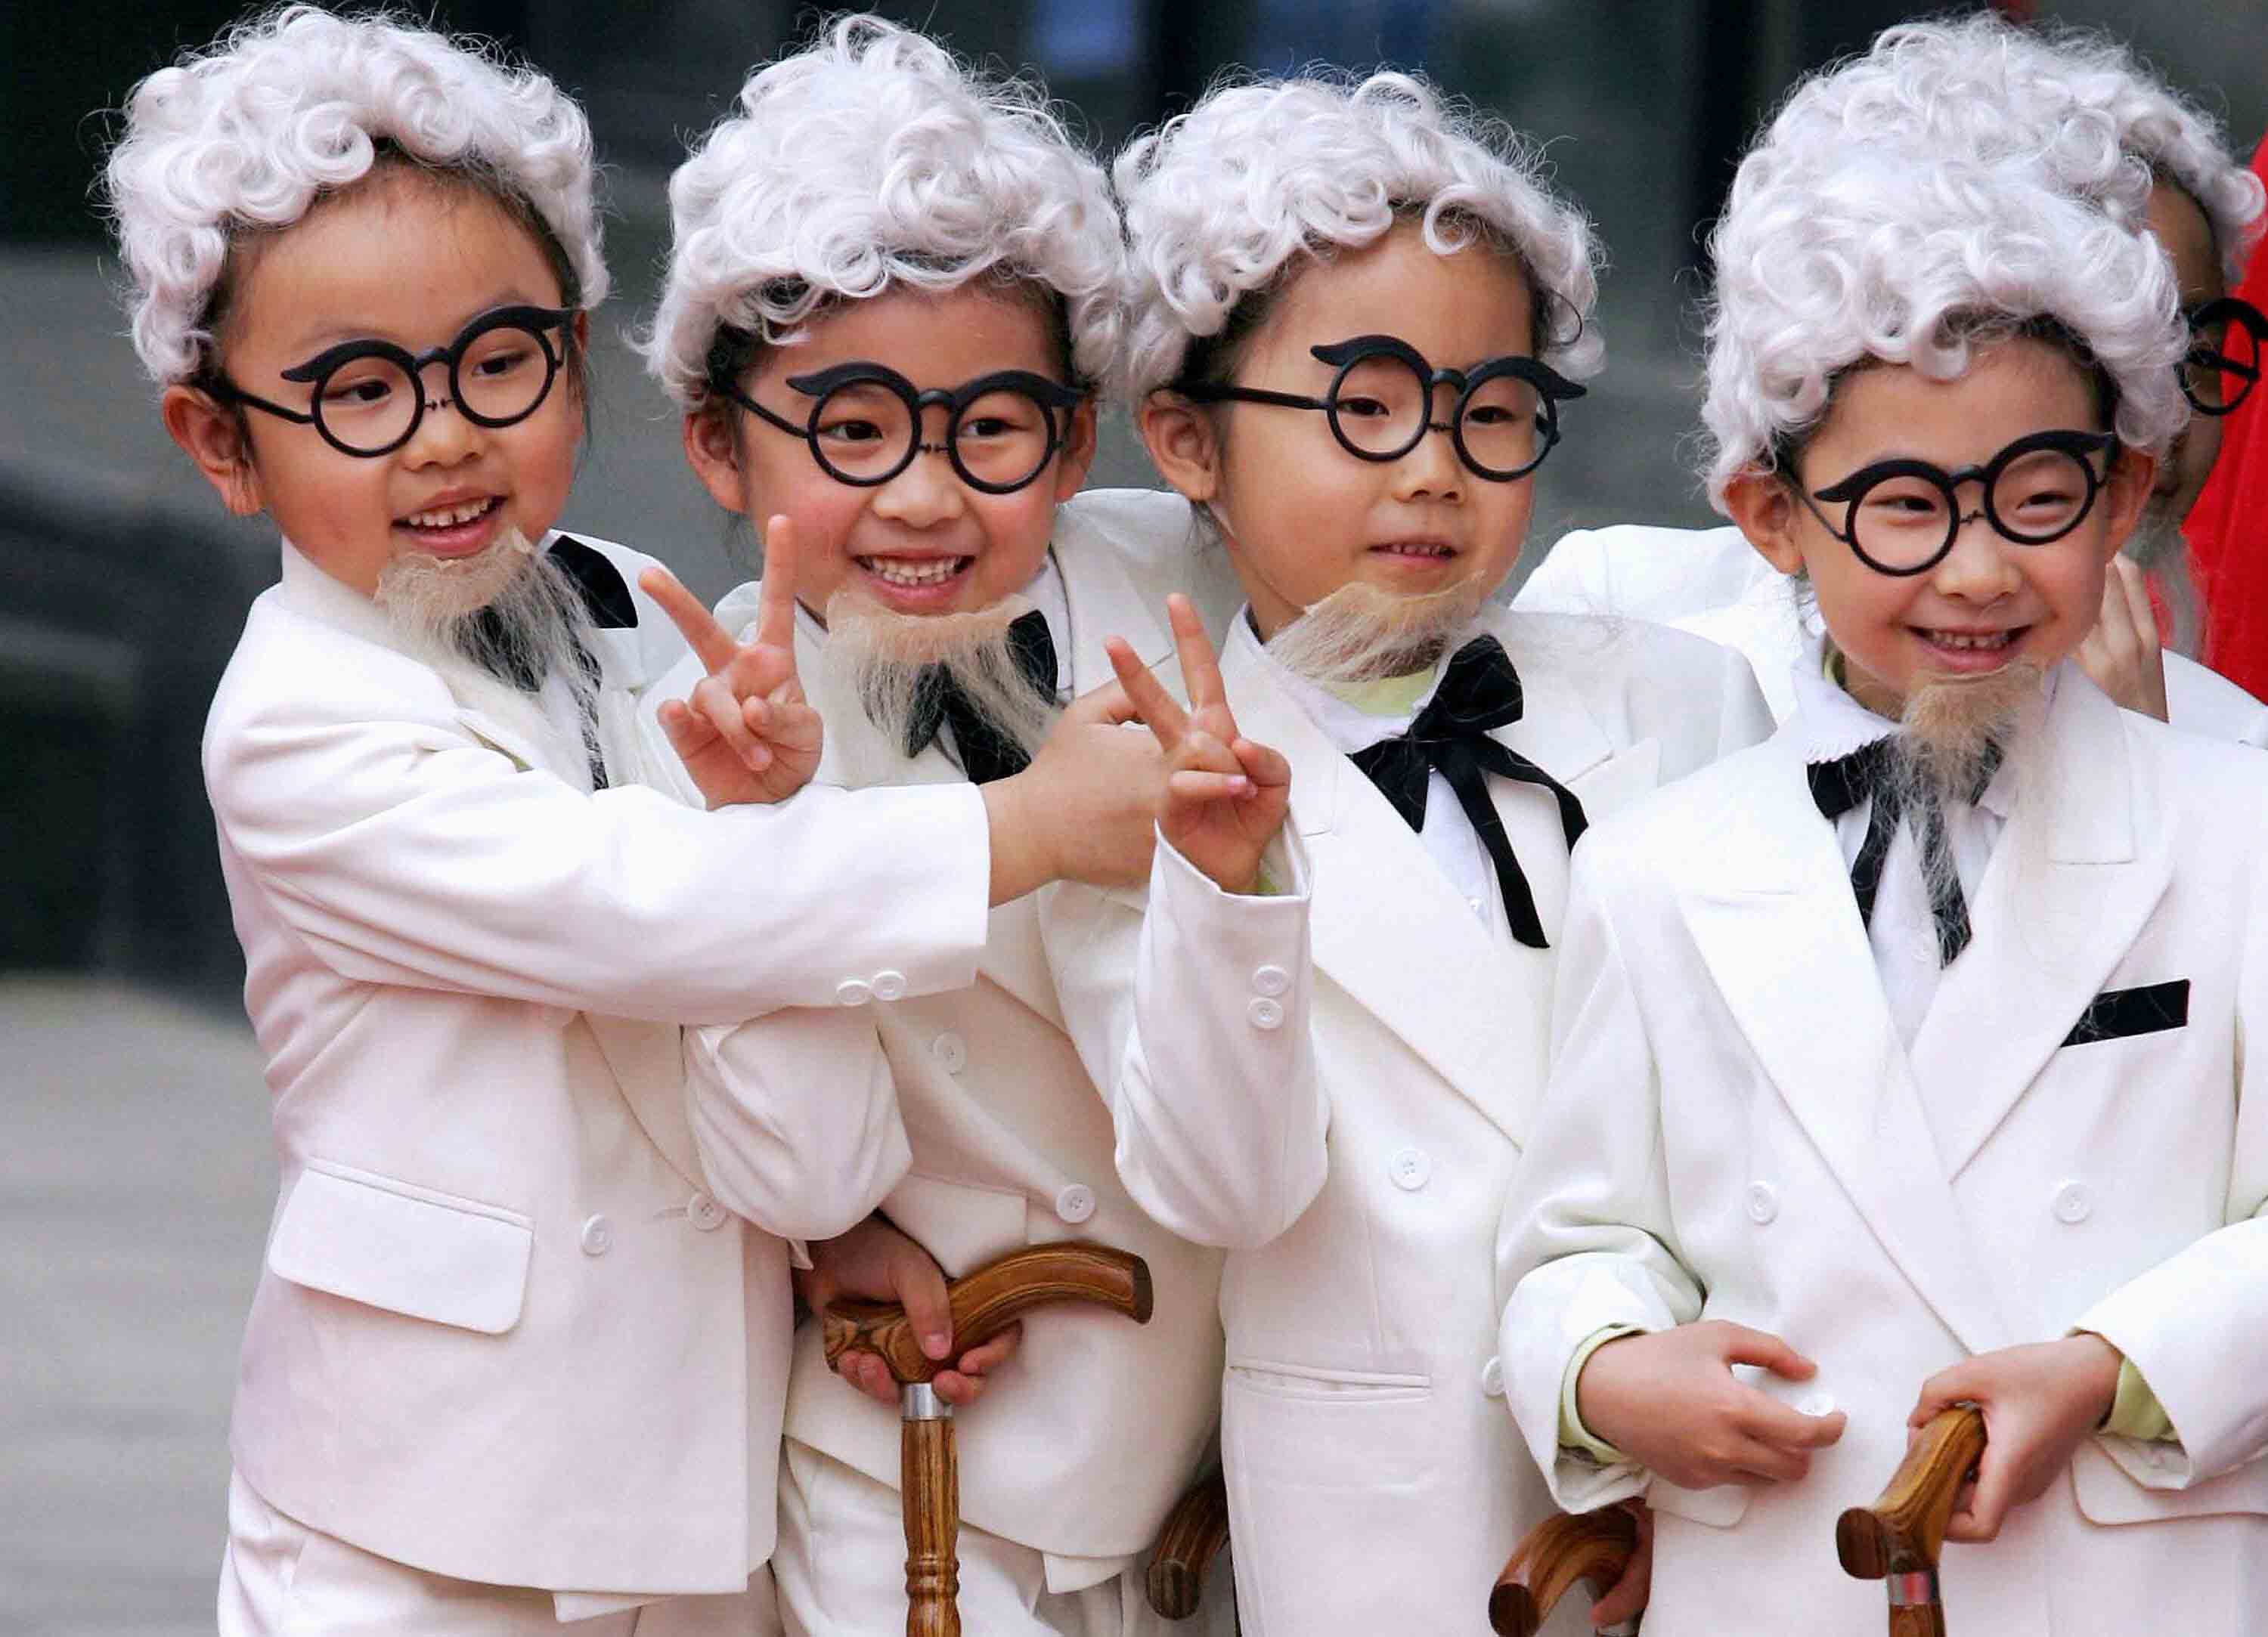 Chinese children dress up as KFC mascot Colonel Sanders